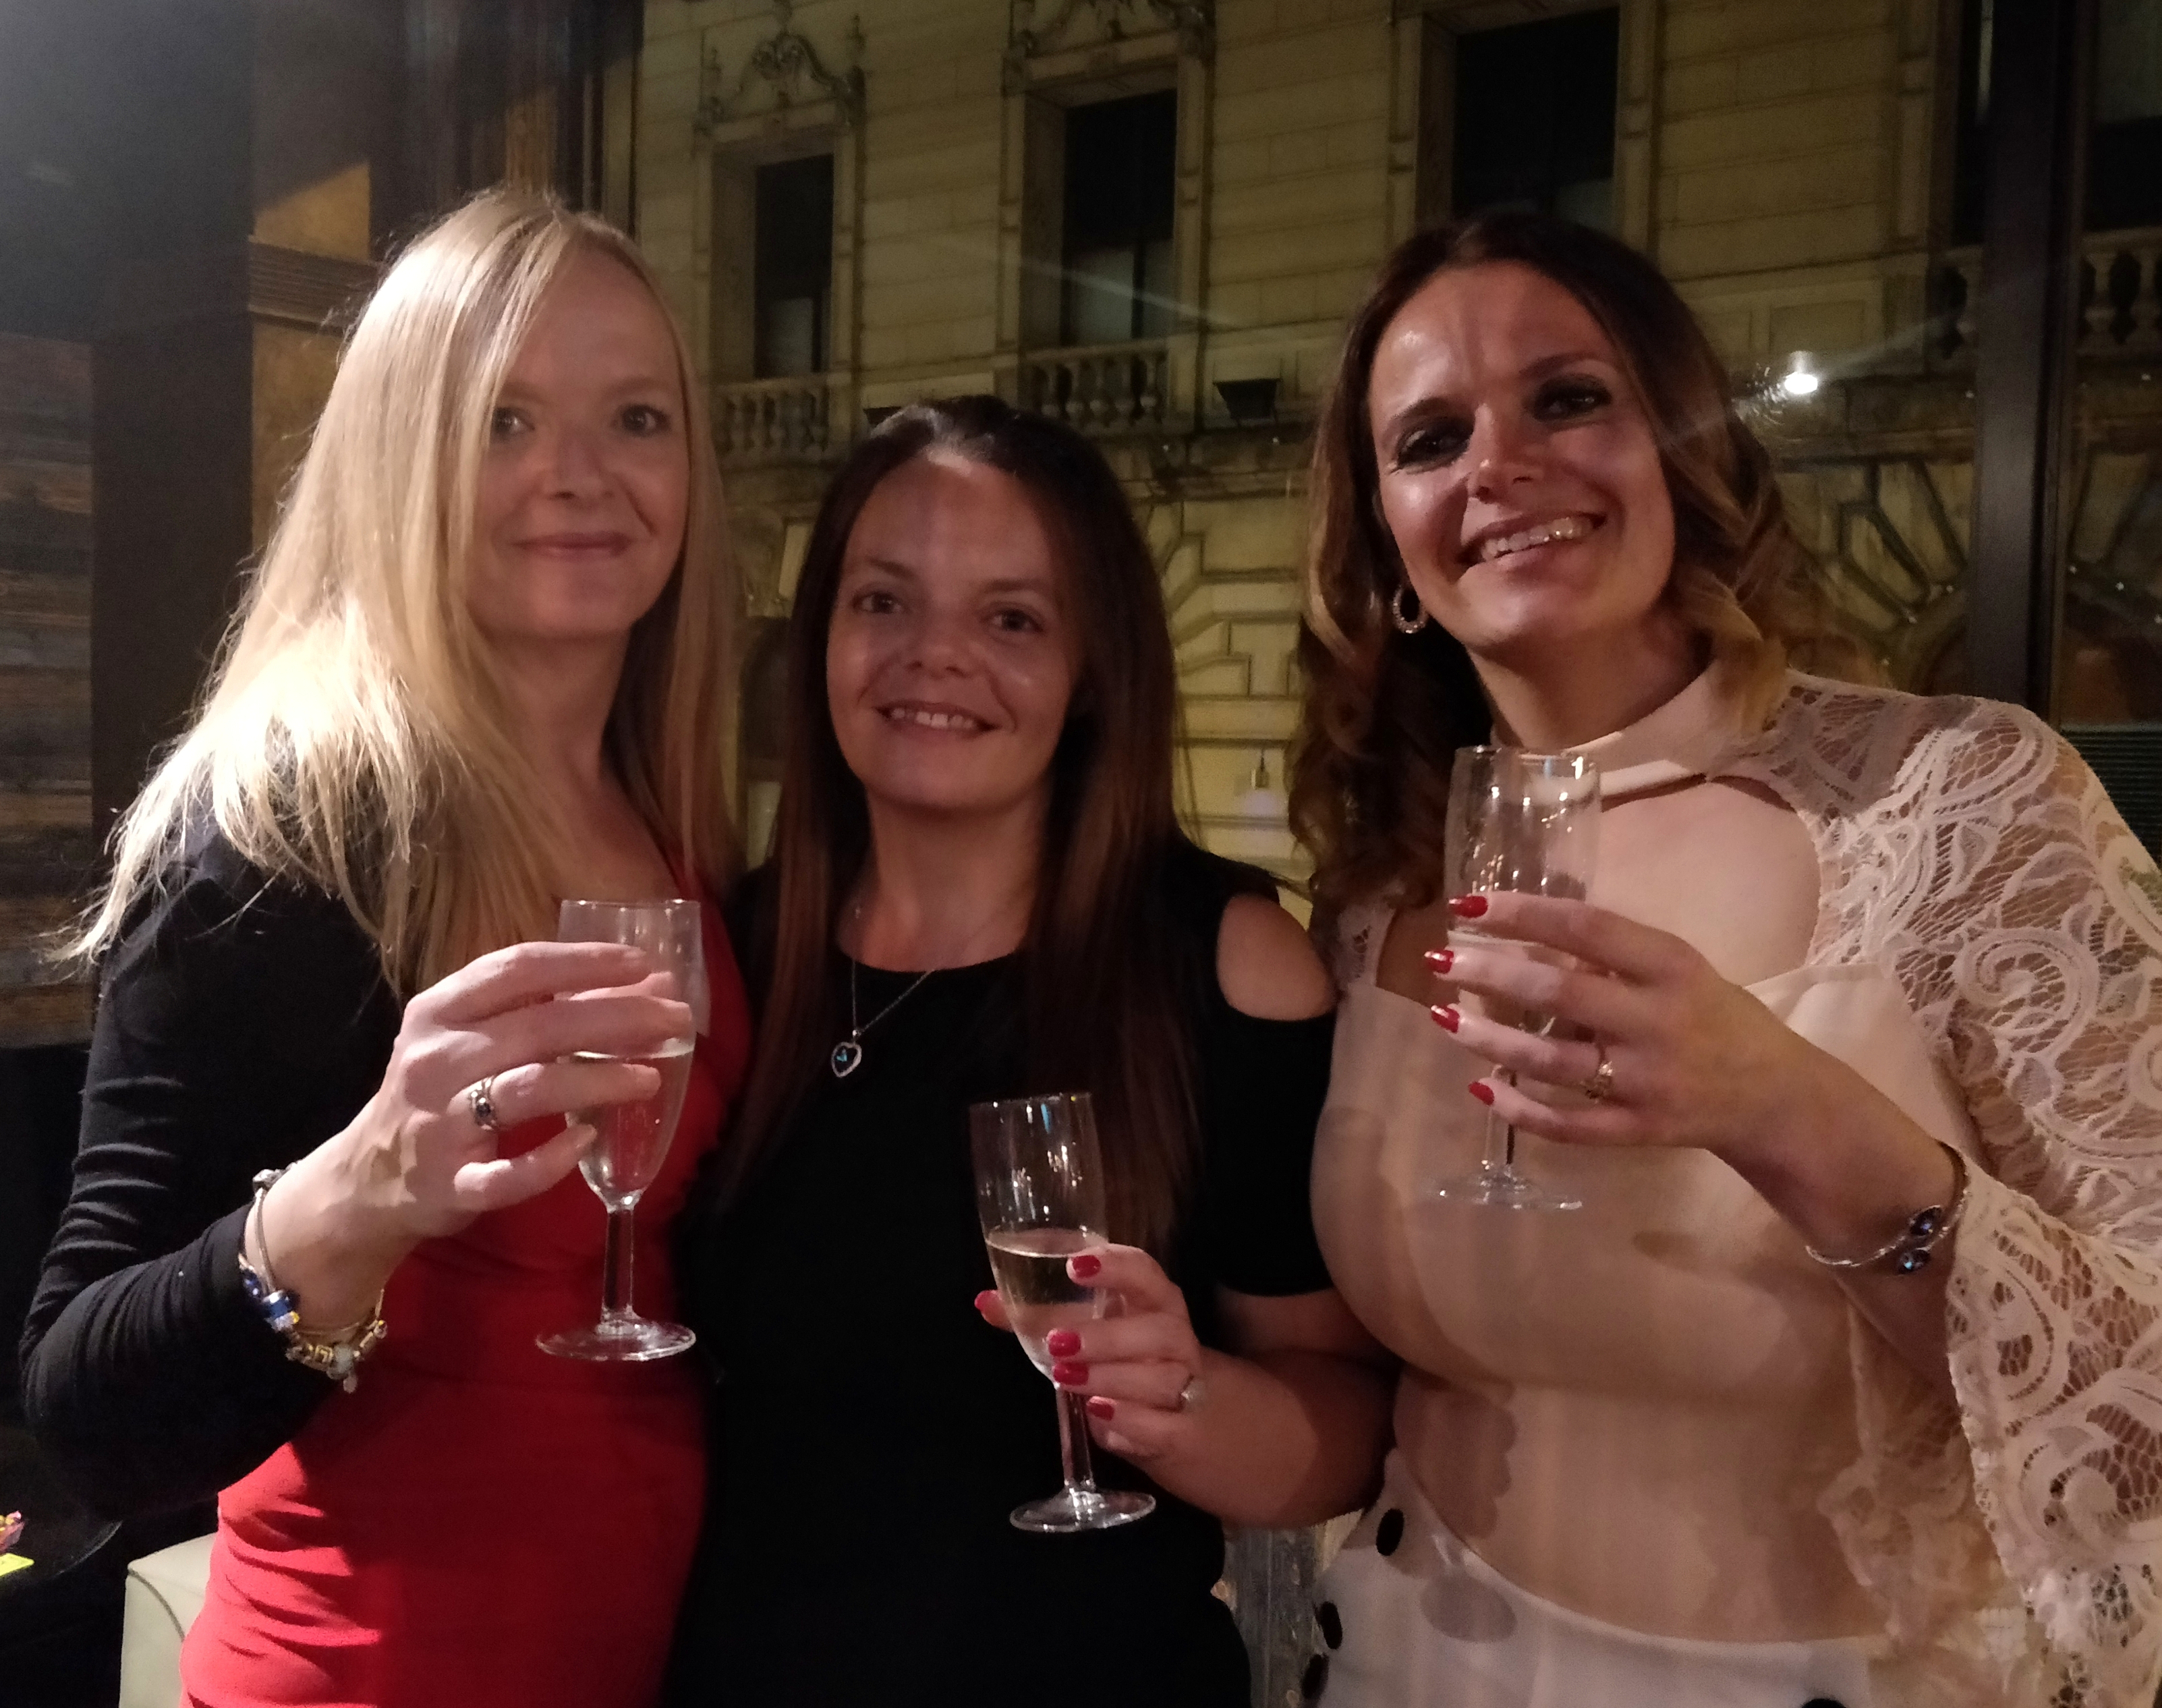 These three lucky ladies won a bottle of Champagne in the Moshi Monster Meet Up challenge.